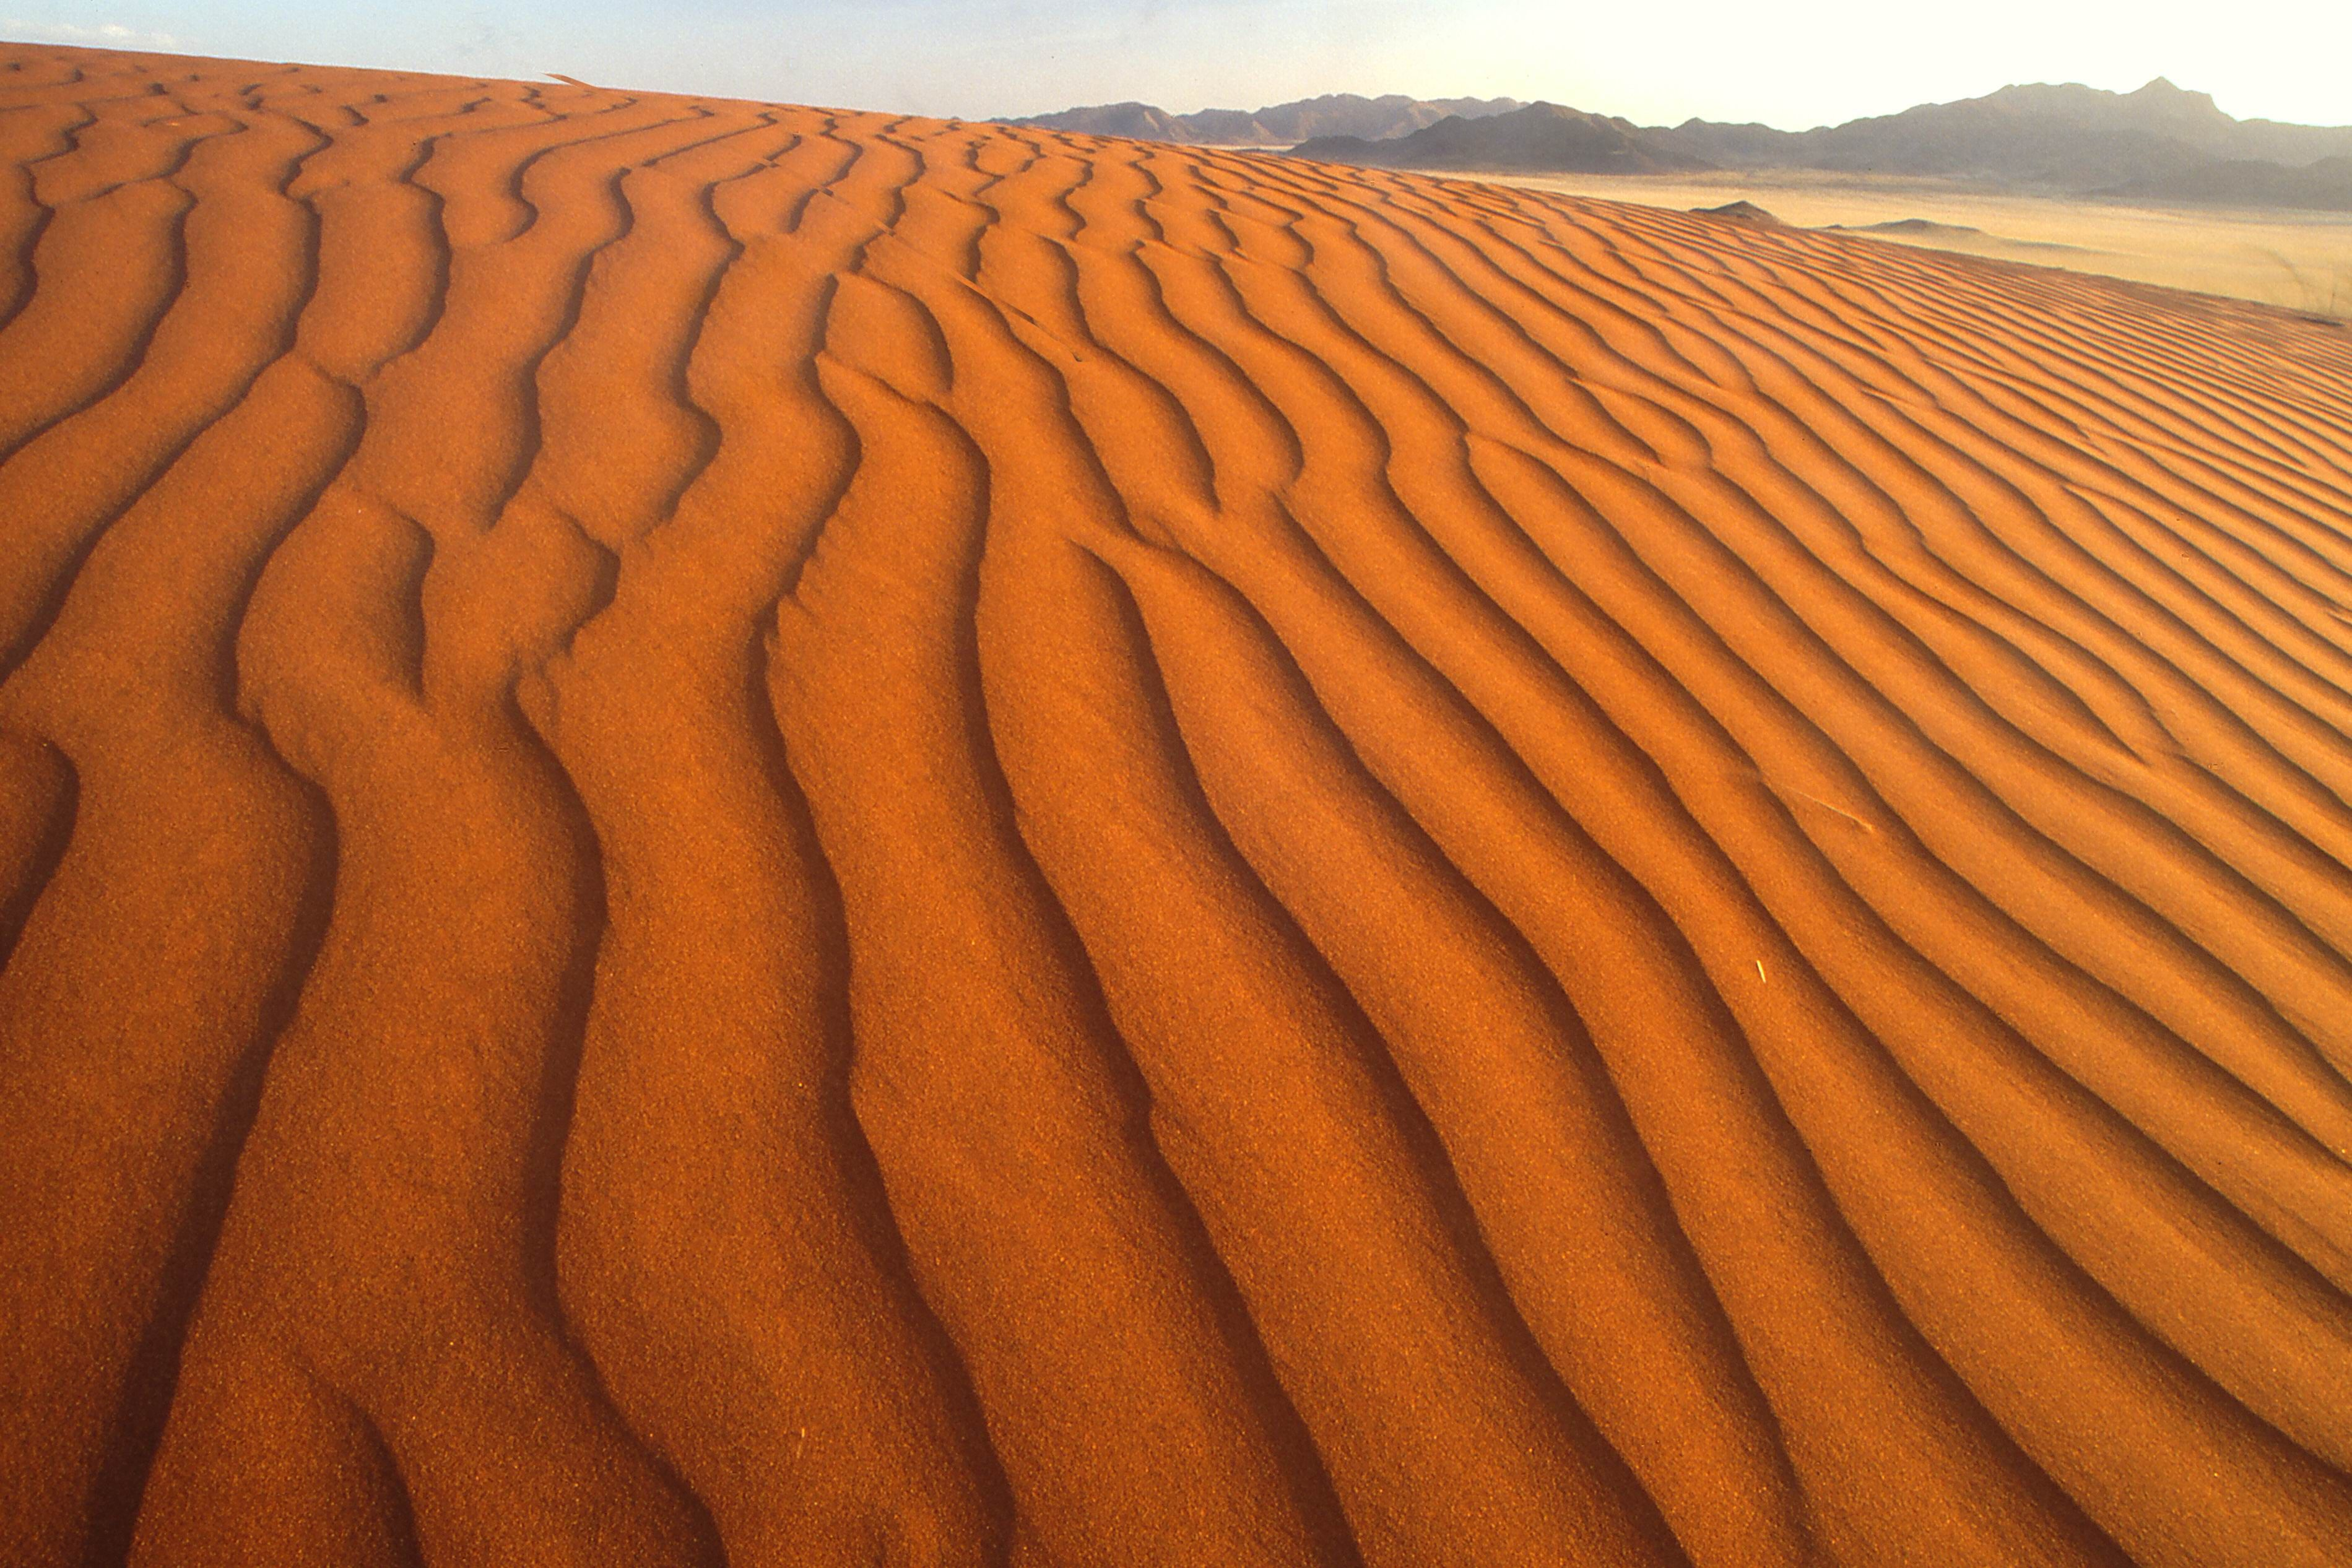 Namibia, Africa - oldest desert worldwide with lively traditions. #namibia #africa #desert #wueste